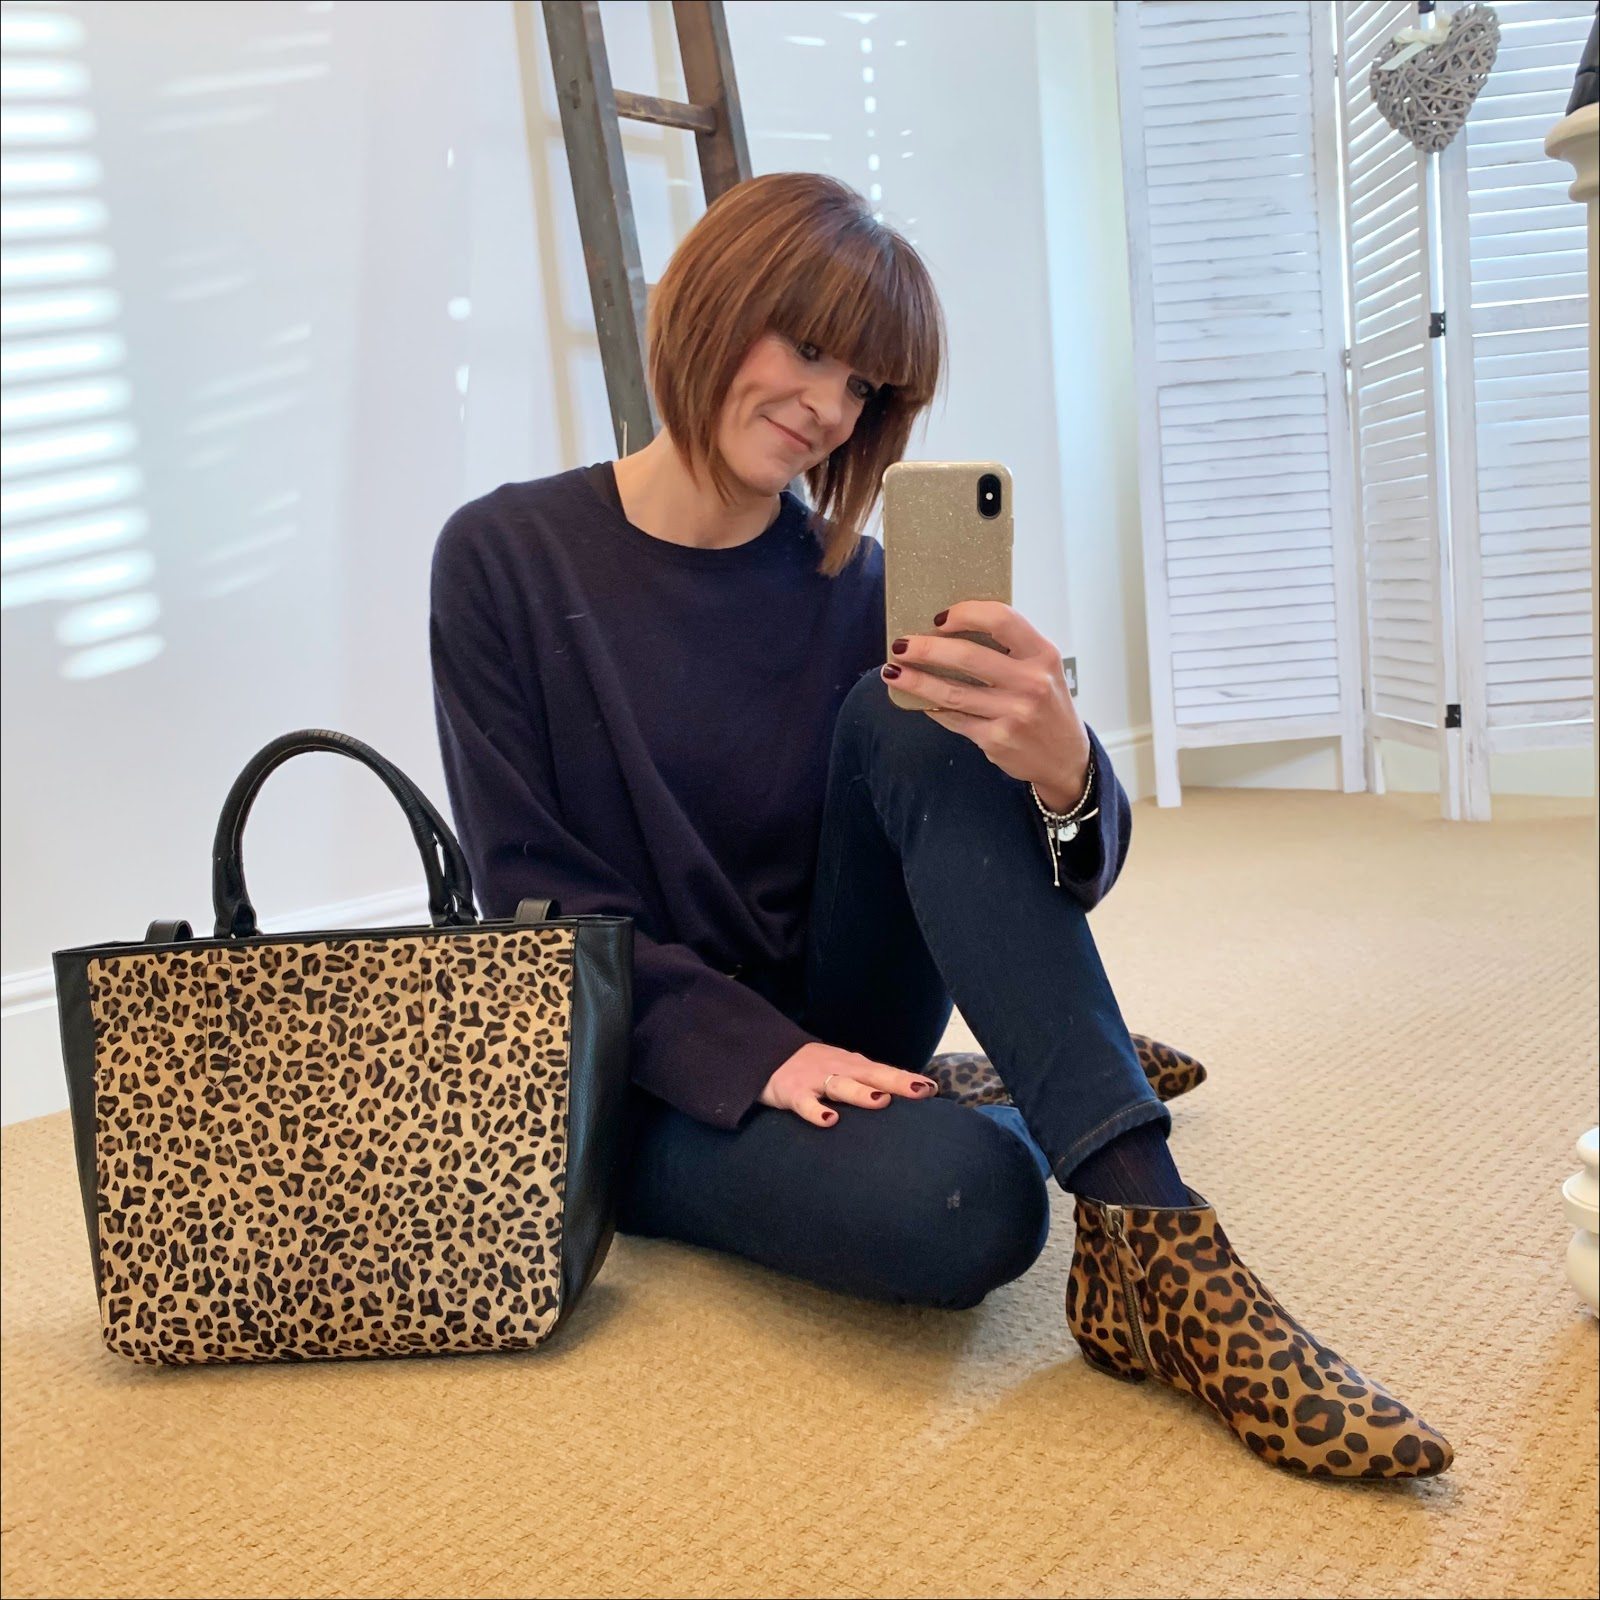 my midlife fashion, h and m oversized crew neck cashmere jumper, gucci double g leather logo belt, j crew 8 inch toothpick jeans in classic wash, boden johnnie leopard print ankle boots, radley witney faux leopard leather large grab tote bag